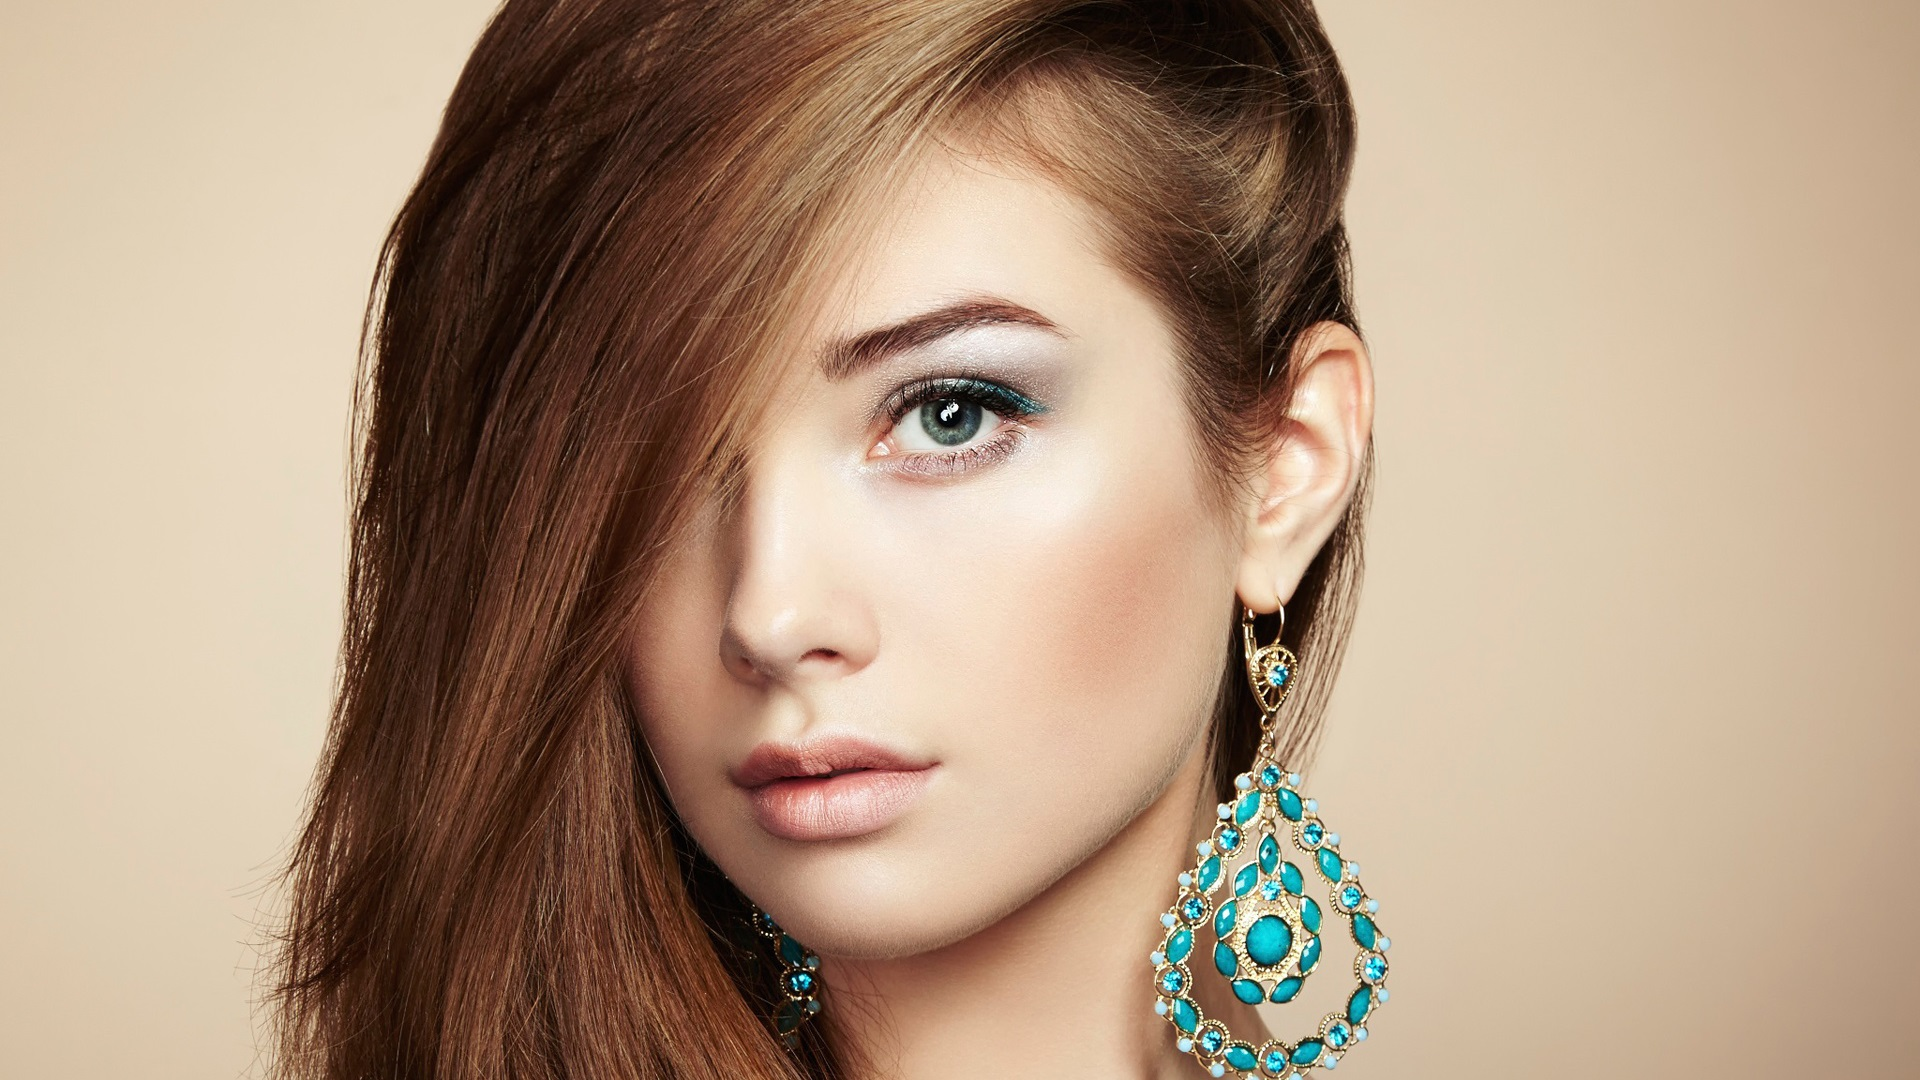 Beautiful young girl jewelry and accessories perfect makeup wallpaper 1920x1080 full hd - Garls perpact ...